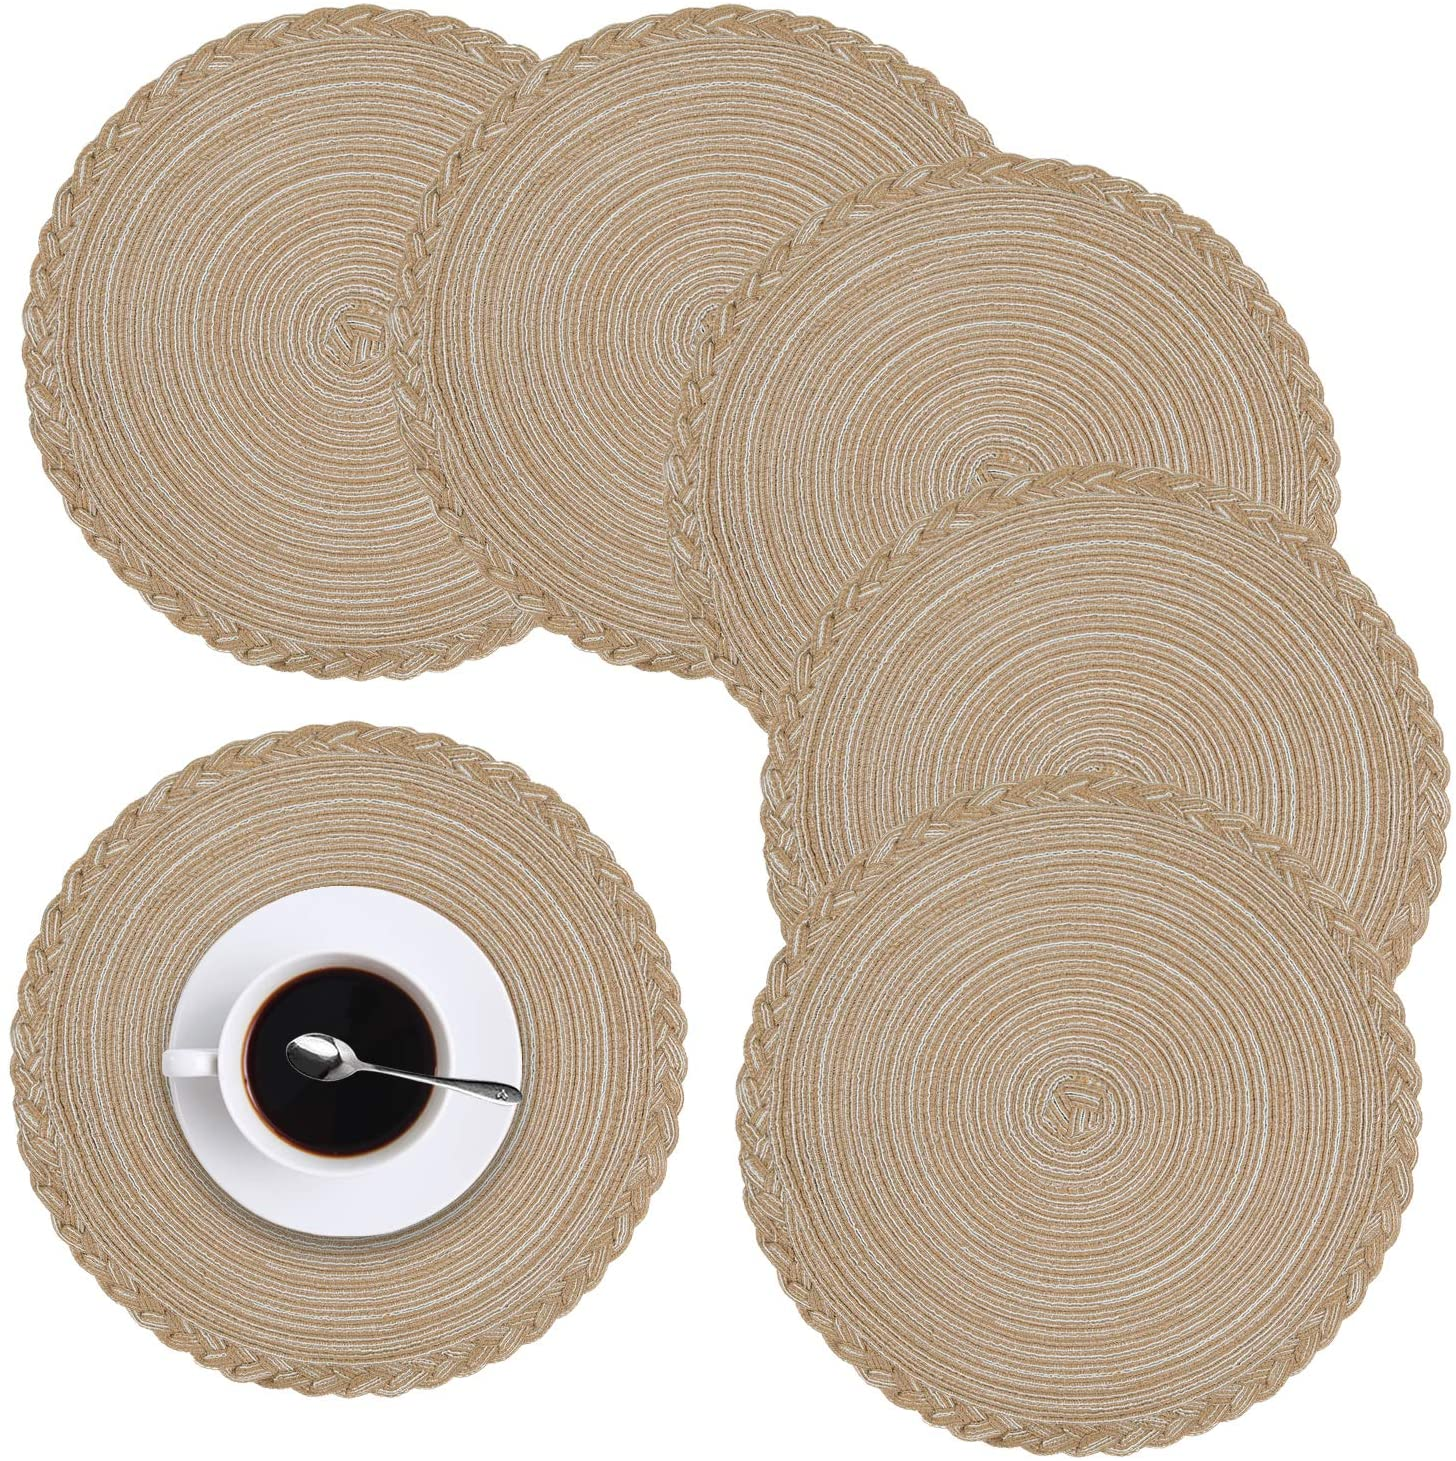 homing Placemats for Dining Table Set of 6 - Braided Round Heat-Resistant Cotton 14